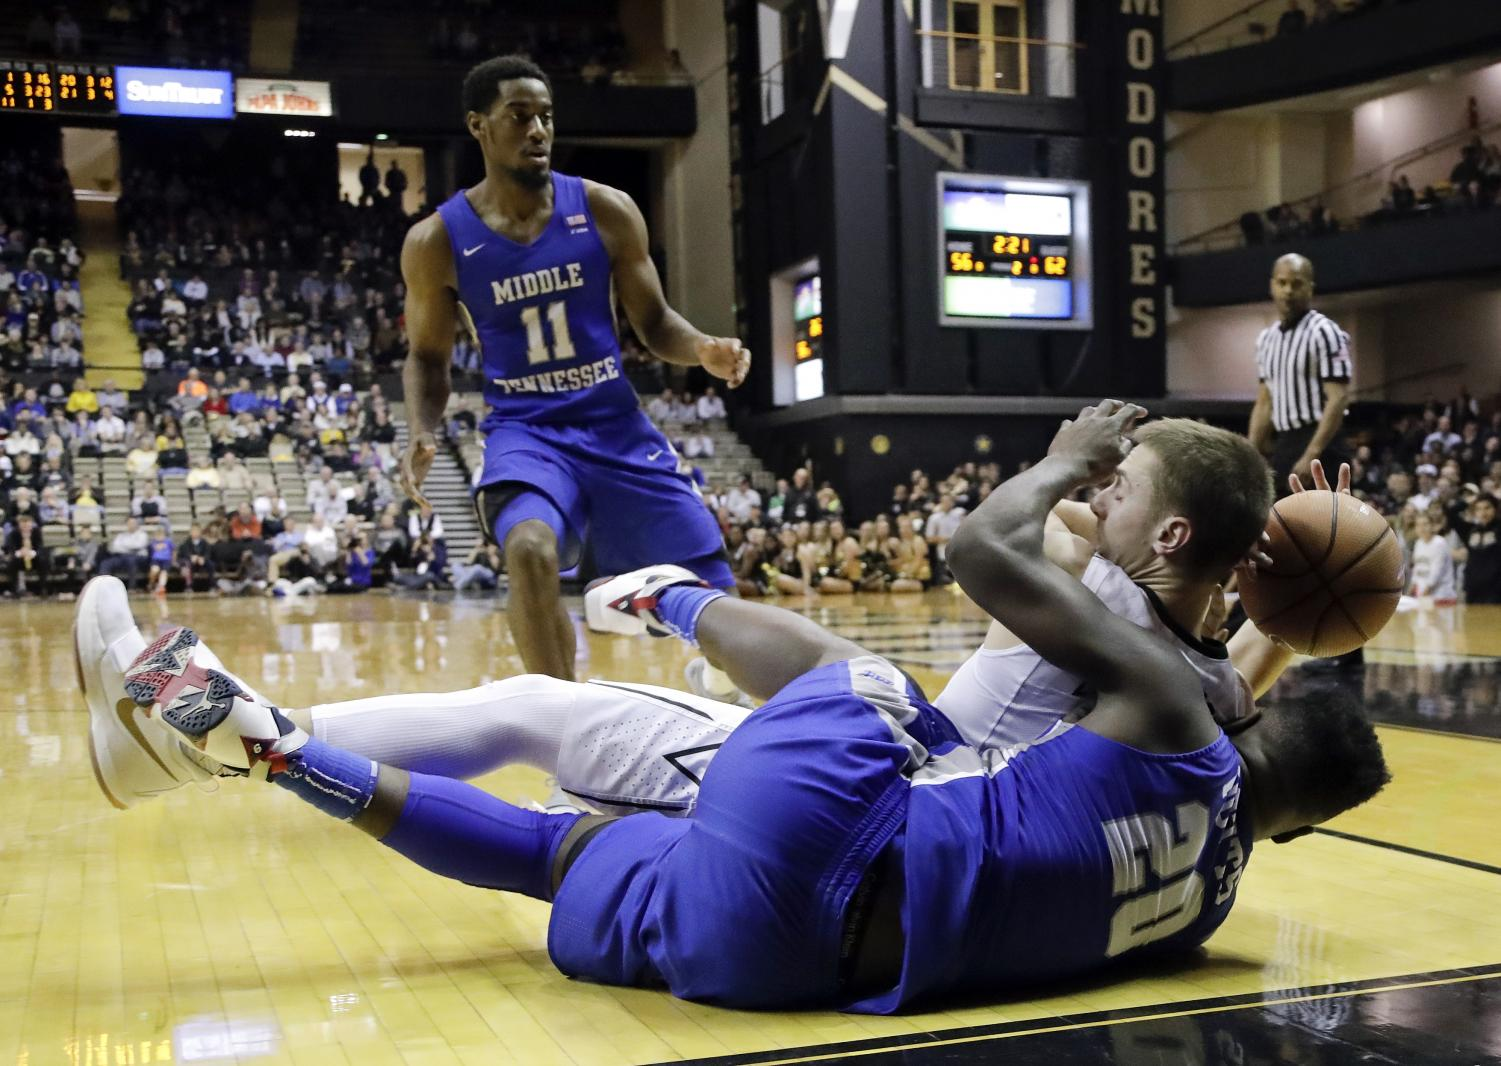 Middle Tennessee guard Giddy Potts (20) dives for the ball with Vanderbilt guard Riley LaChance in the second half of an NCAA college basketball game Wednesday, Dec. 6, 2017, in Nashville, Tenn. Middle Tennessee guard Edward Simpson (11) watches. Middle Tennessee won 66-63. (AP Photo/Mark Humphrey)